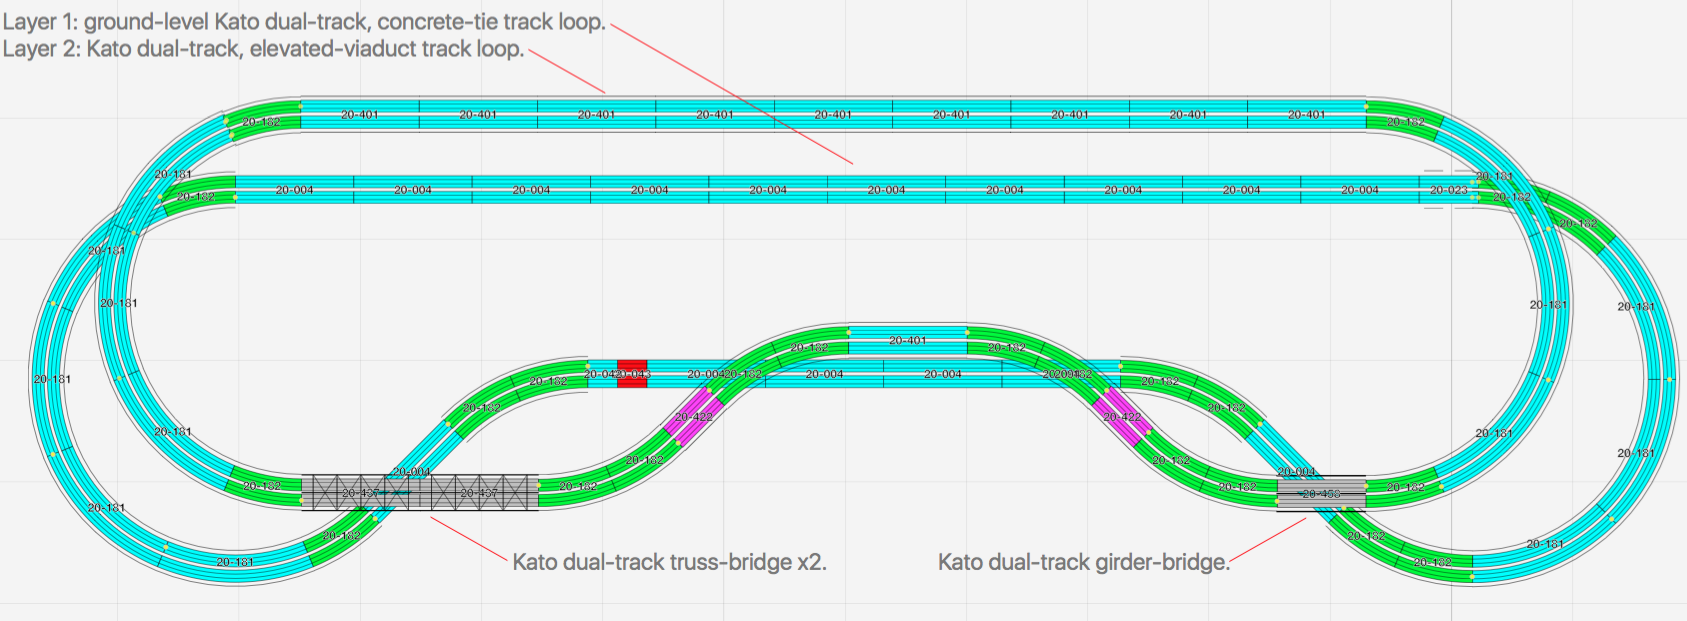 N Scale Kato Unitrack Unitram Layout Small Build Progress Track Wiring The Upper Loop Is Dual Raised Viaduct Lower Represents Ground Level Rail Lines